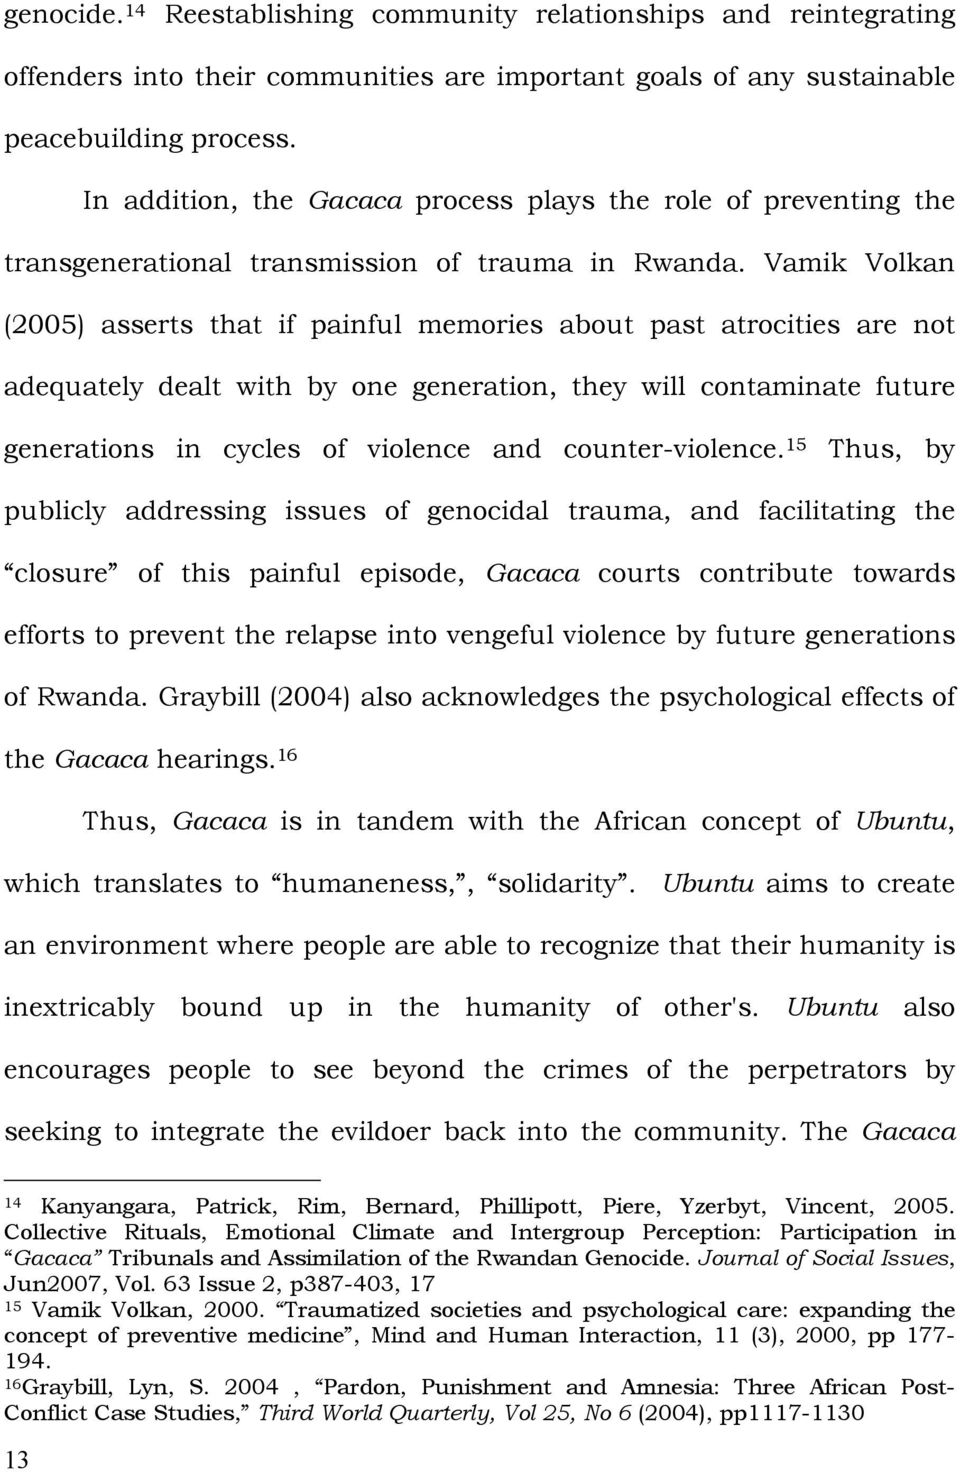 Vamik Volkan (2005) asserts that if painful memories about past atrocities are not adequately dealt with by one generation, they will contaminate future generations in cycles of violence and